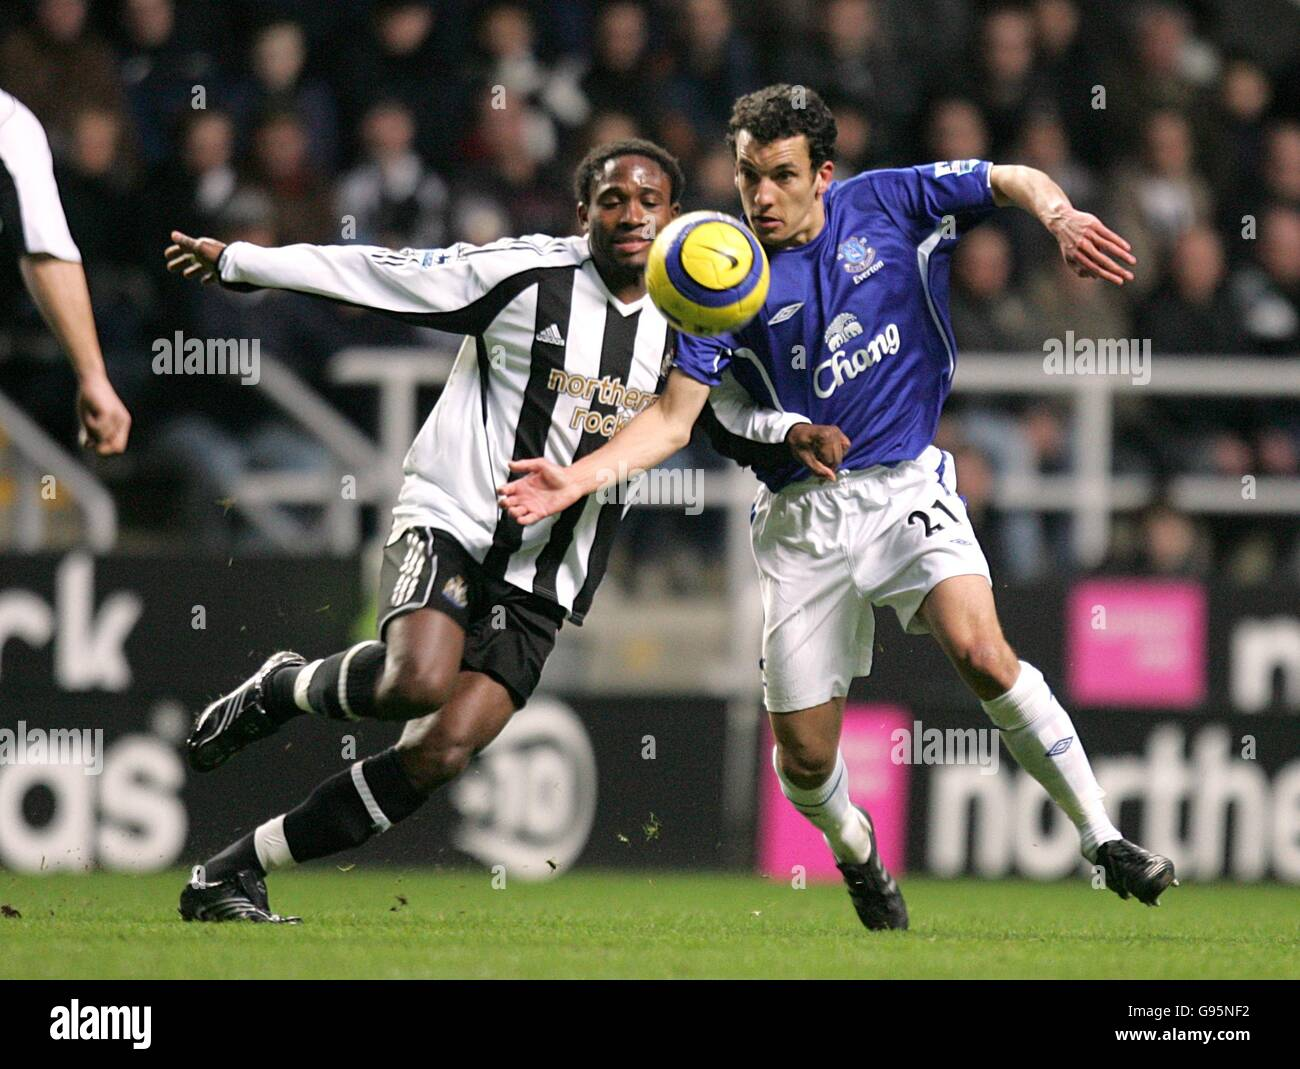 Soccer - FA Barclays Premiership - Newcastle United v Everton - St James Park - Stock Image